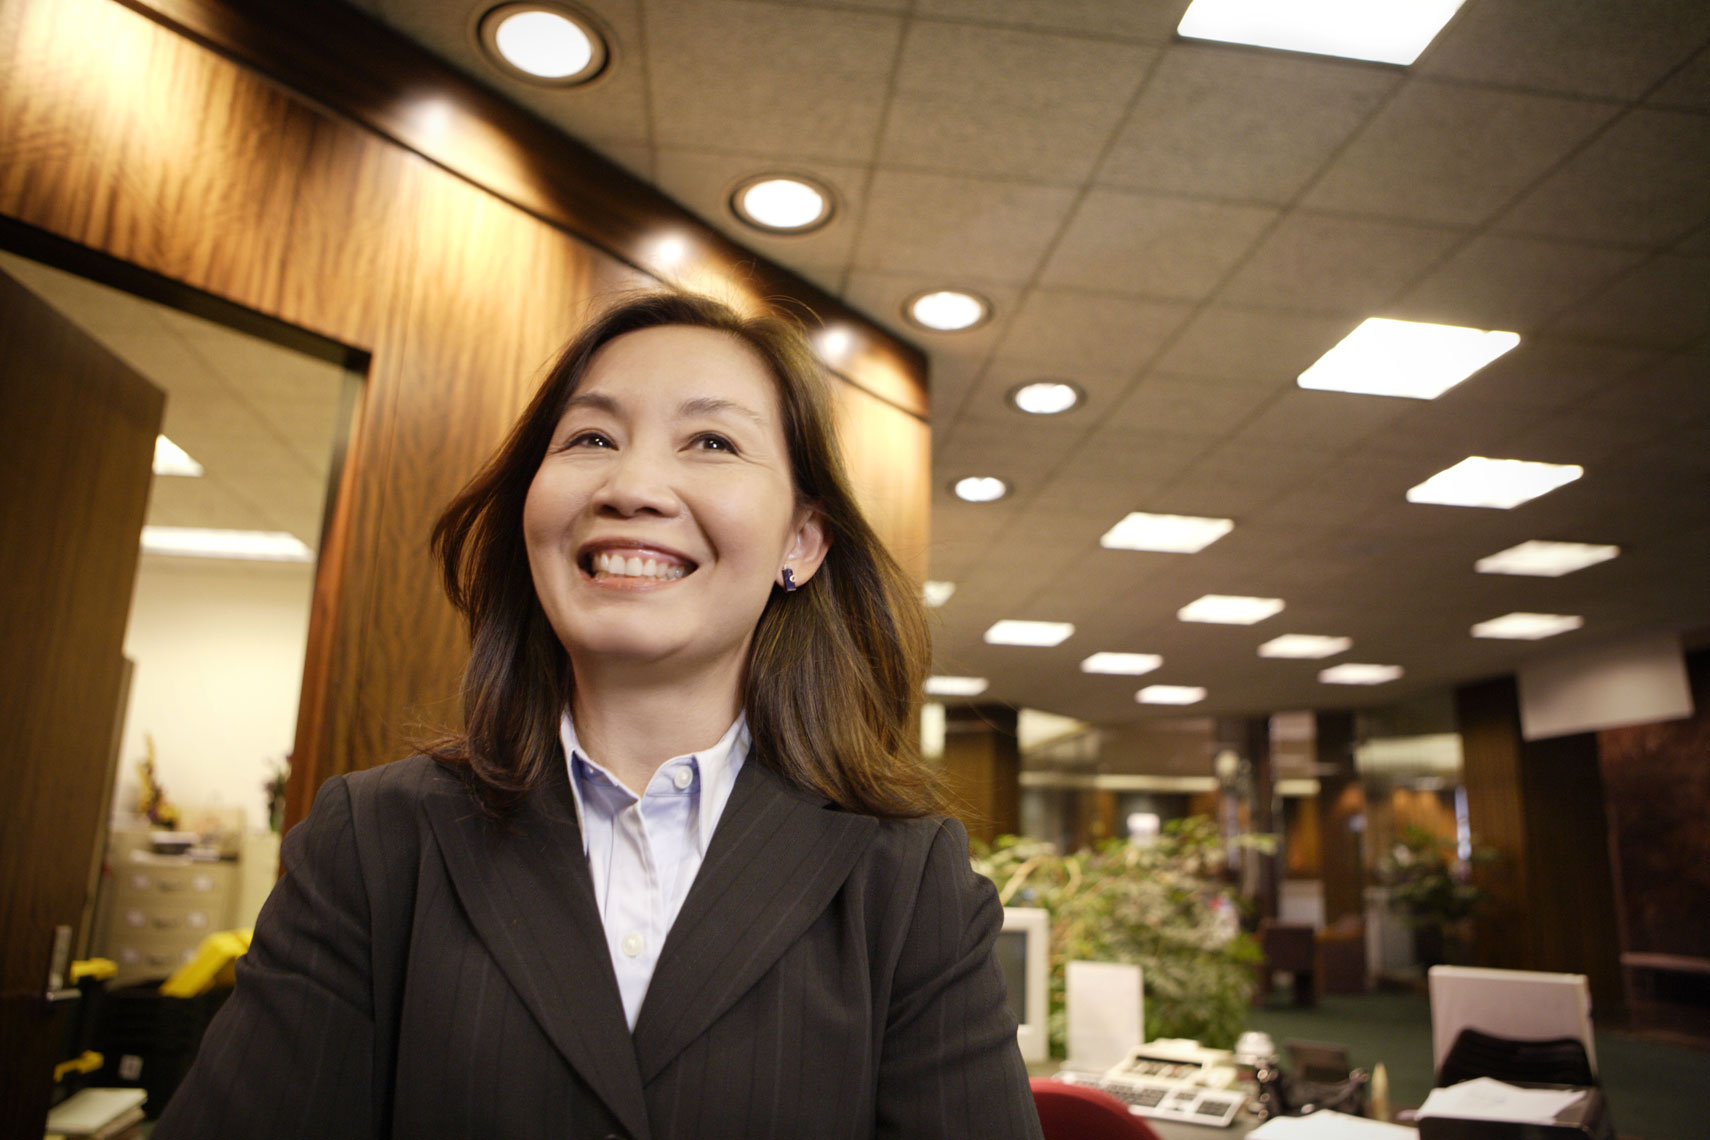 Environmental portrait of an Asian woman bank employee